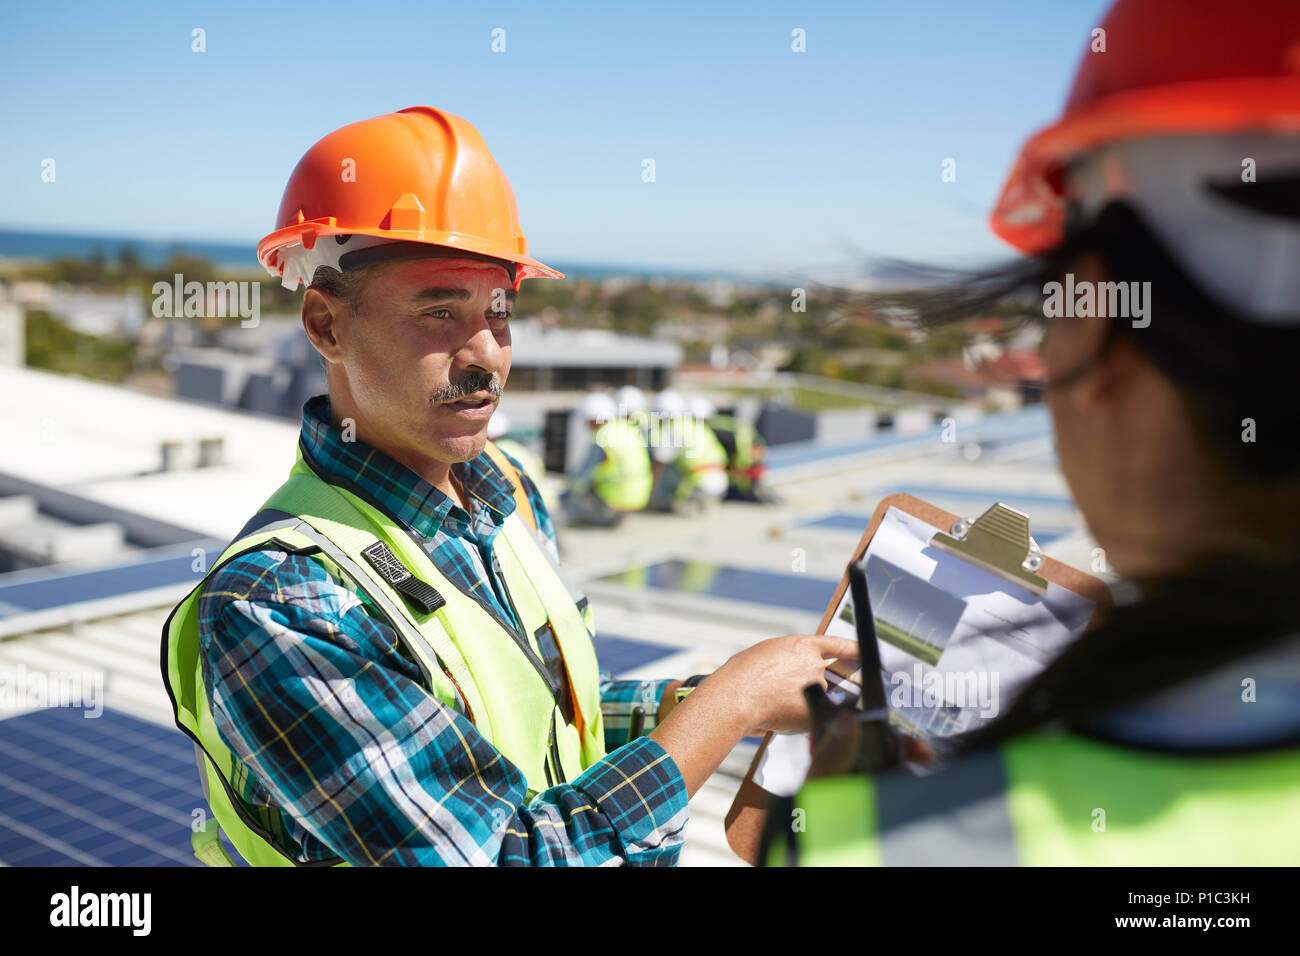 Engineers discussing paperwork at alternative energy power plant - Stock Image